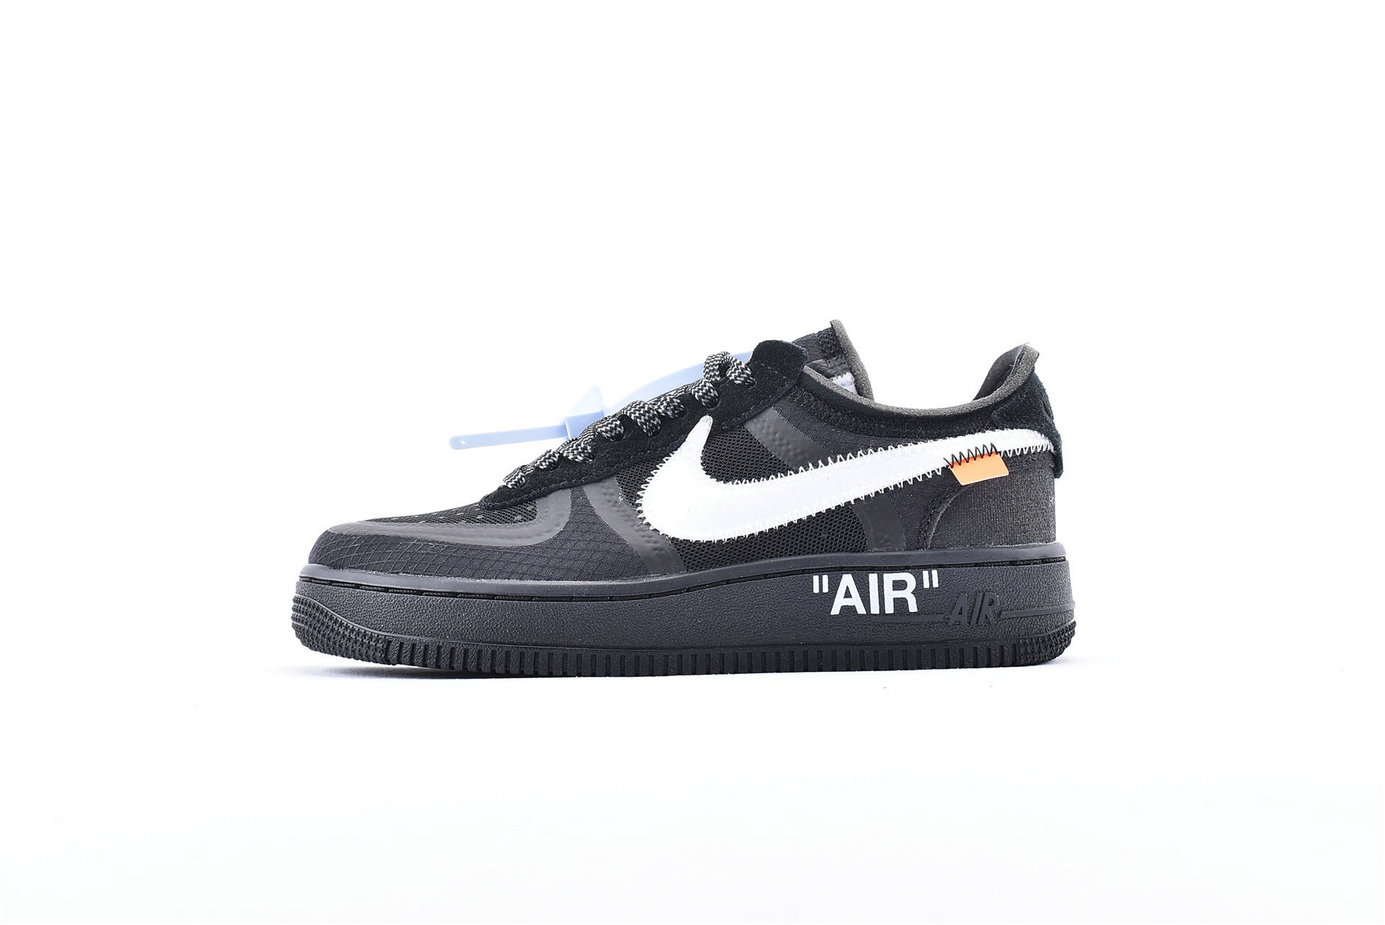 Where To Buy Wholesale Cheap Off-White x Nike Air Force 1 Low Black-White-Cone-Black AO4606-001 - www.wholesaleflyknit.com